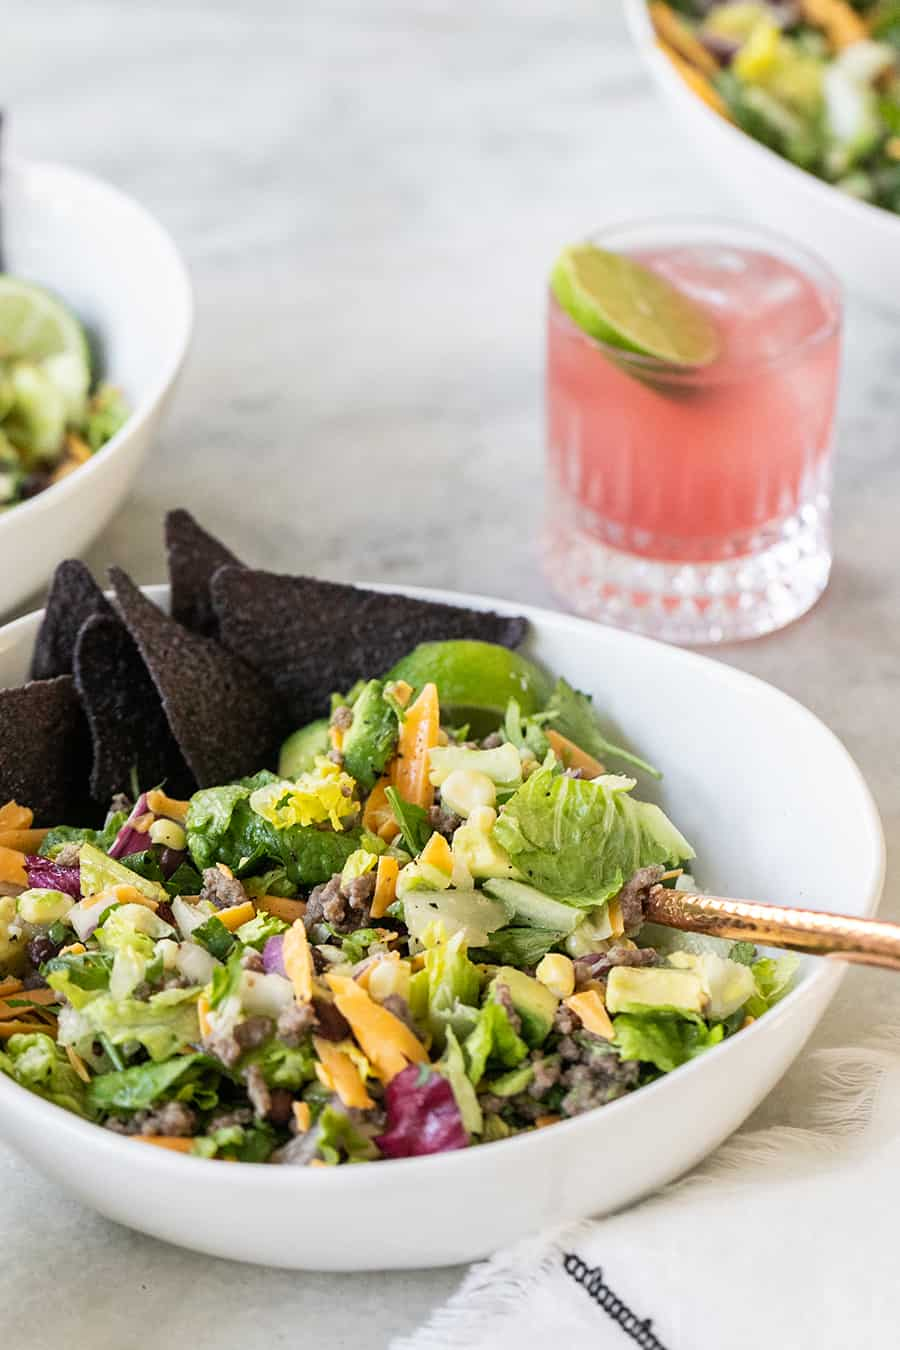 Taco salad bowl with blue chips and margaritas.